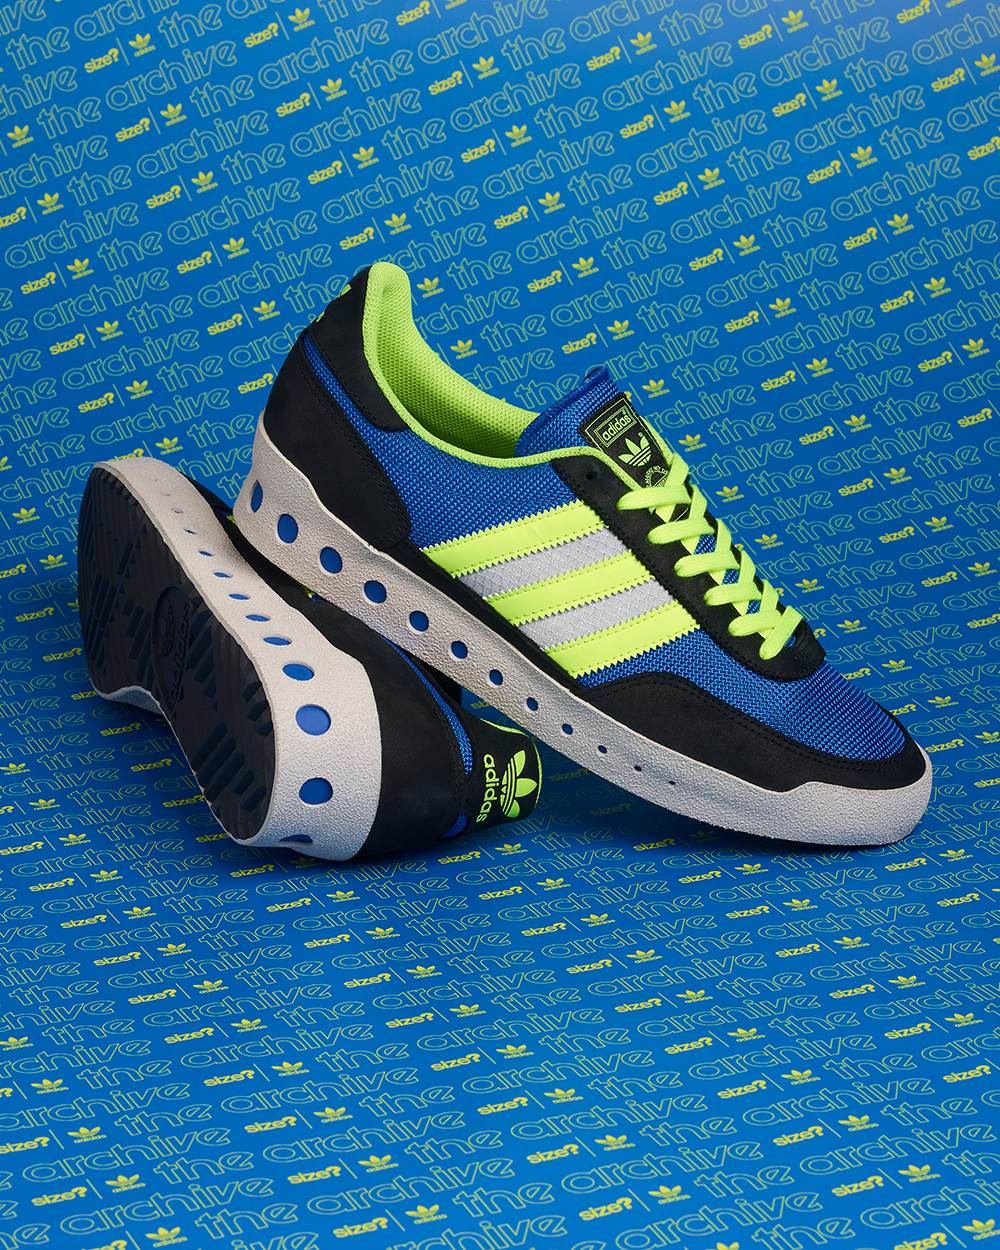 adidas Originals Training PT – size? Exclusive 'Blue/Lime Green' side panel